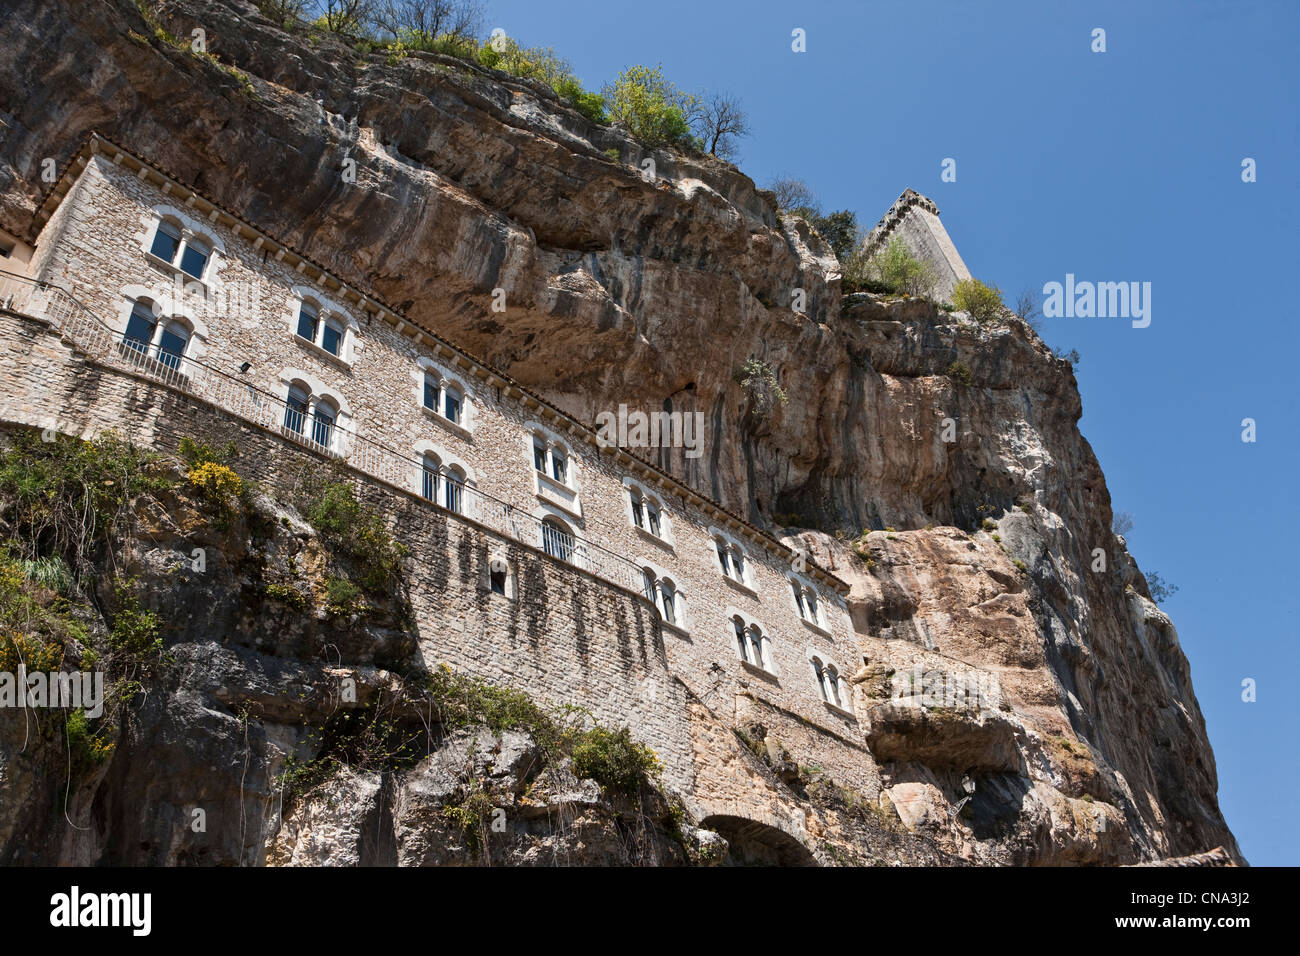 France, Lot, Rocamadour, the former Hospitality - Stock Image